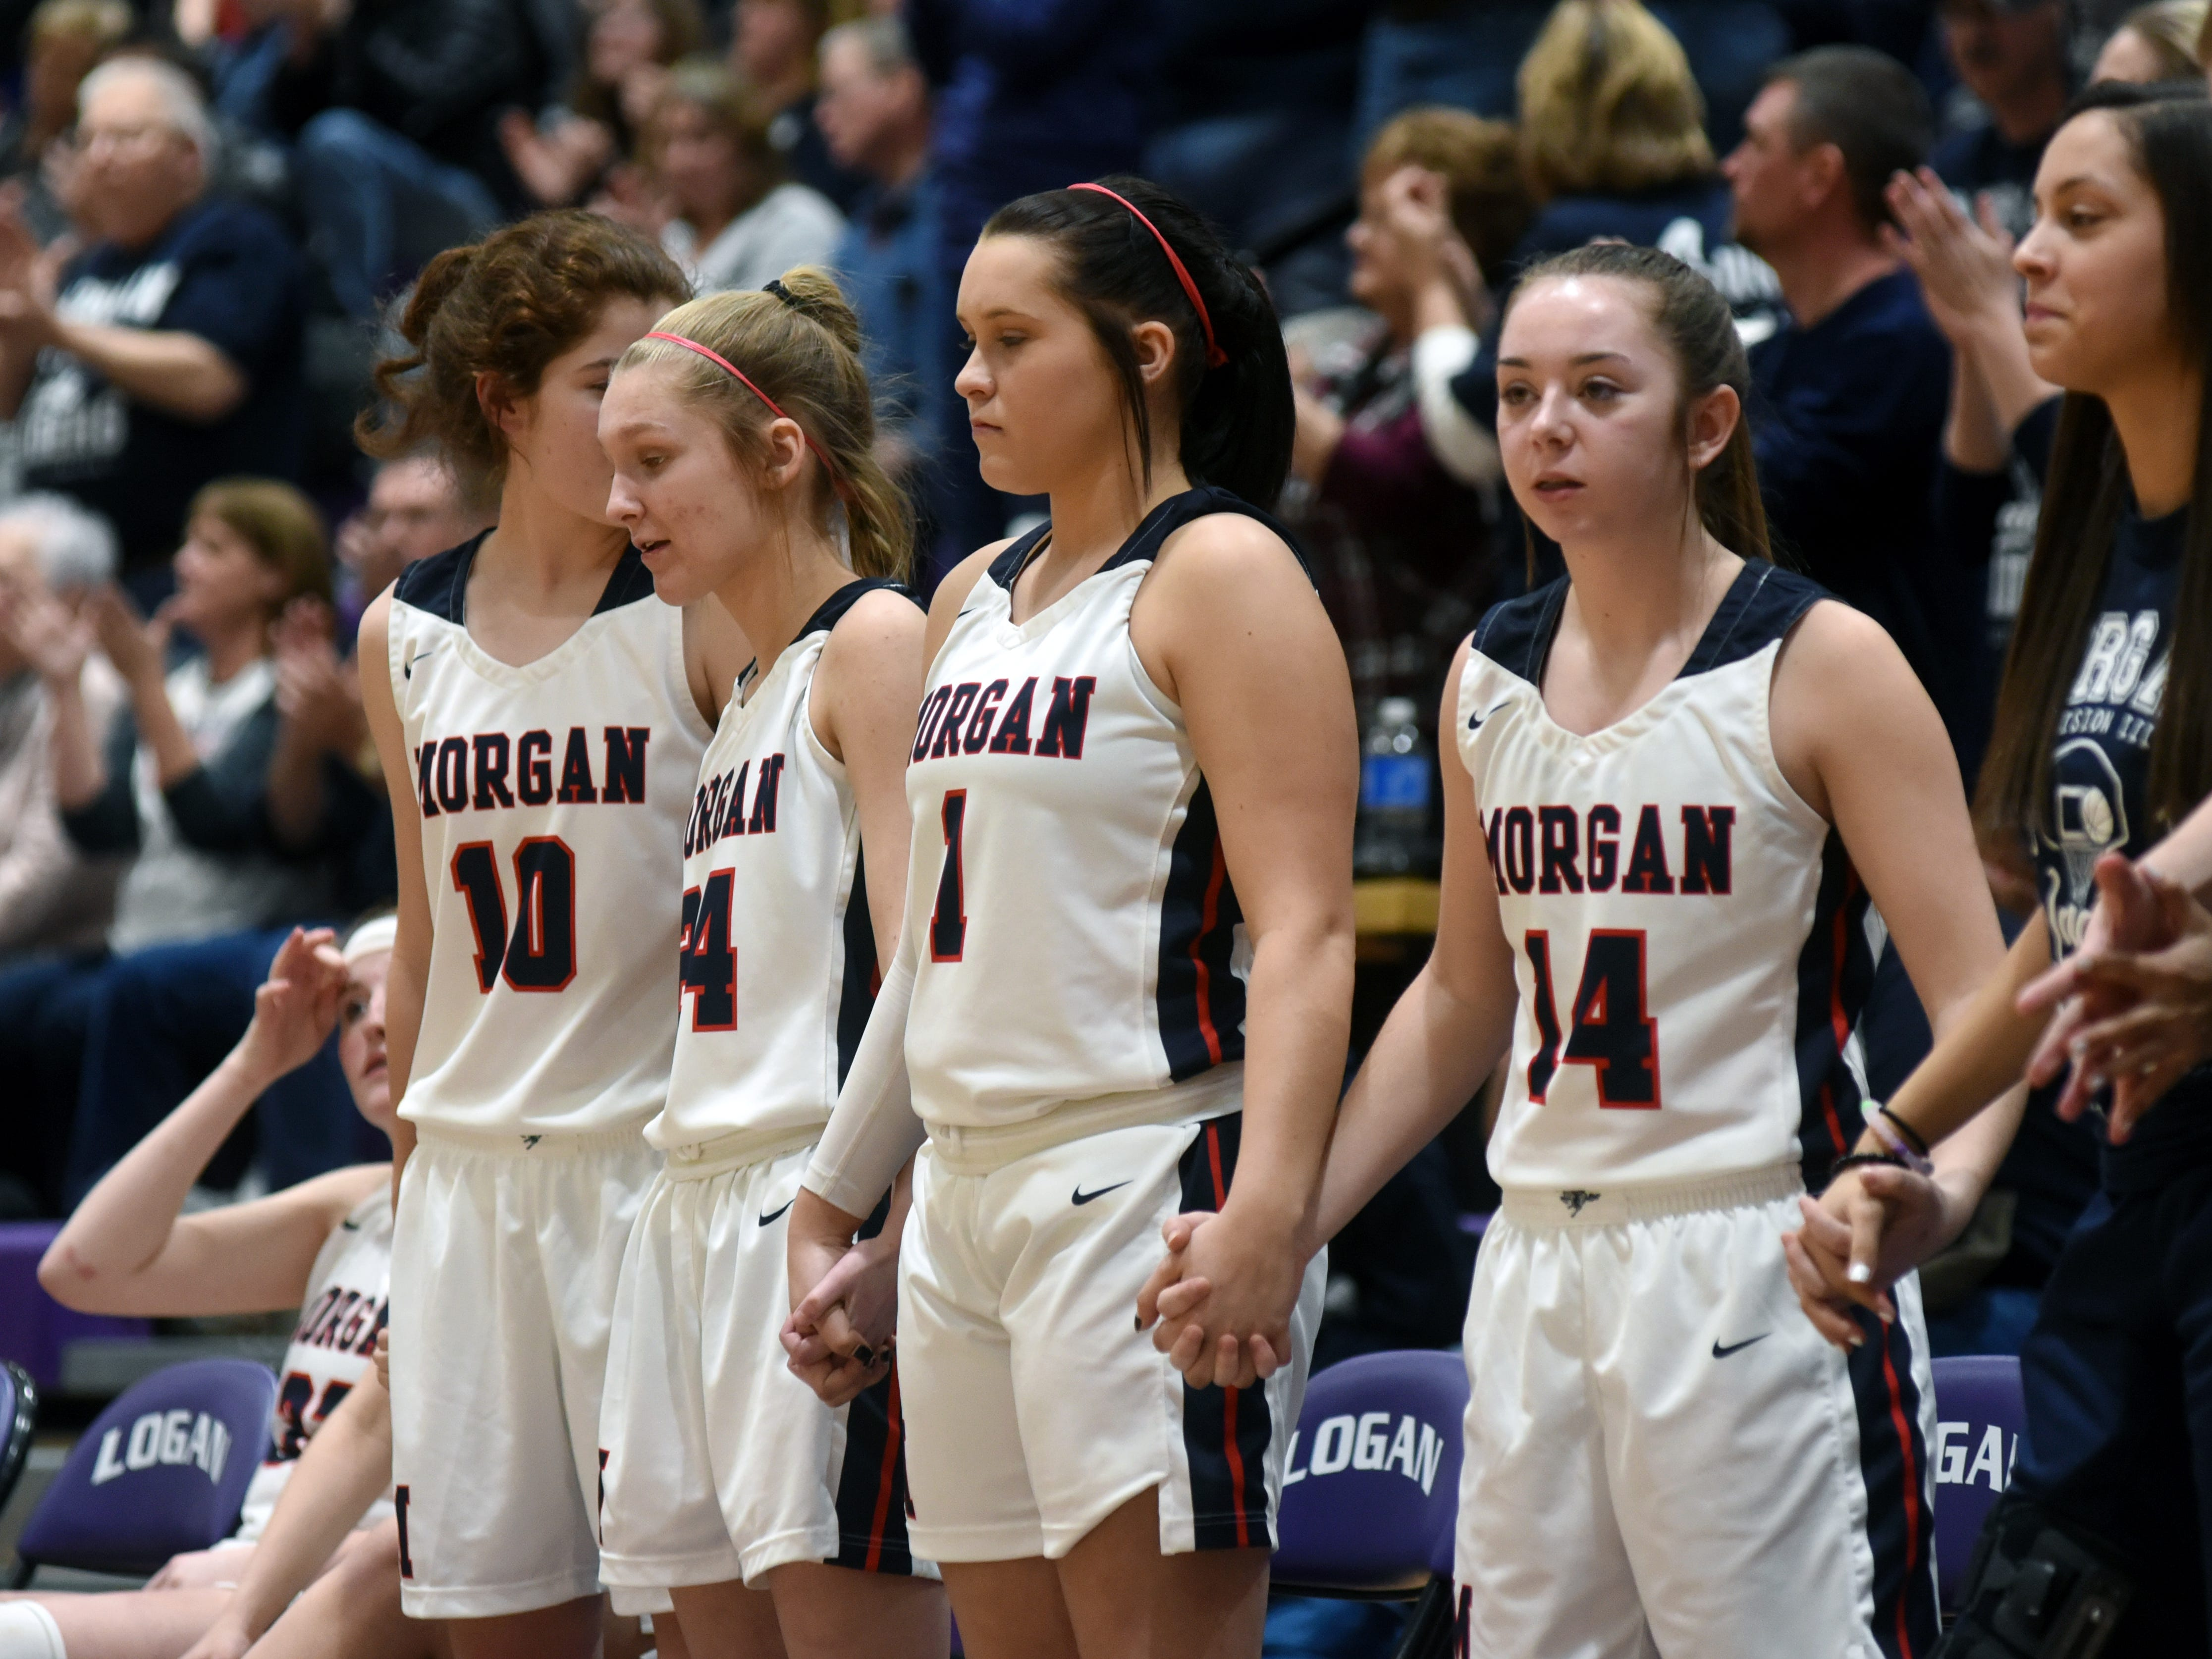 Bench players share a nervous moment in the final minute of Morgan's 56-55 loss to Wheelersburg in a Division III regional semifinal at Logan.